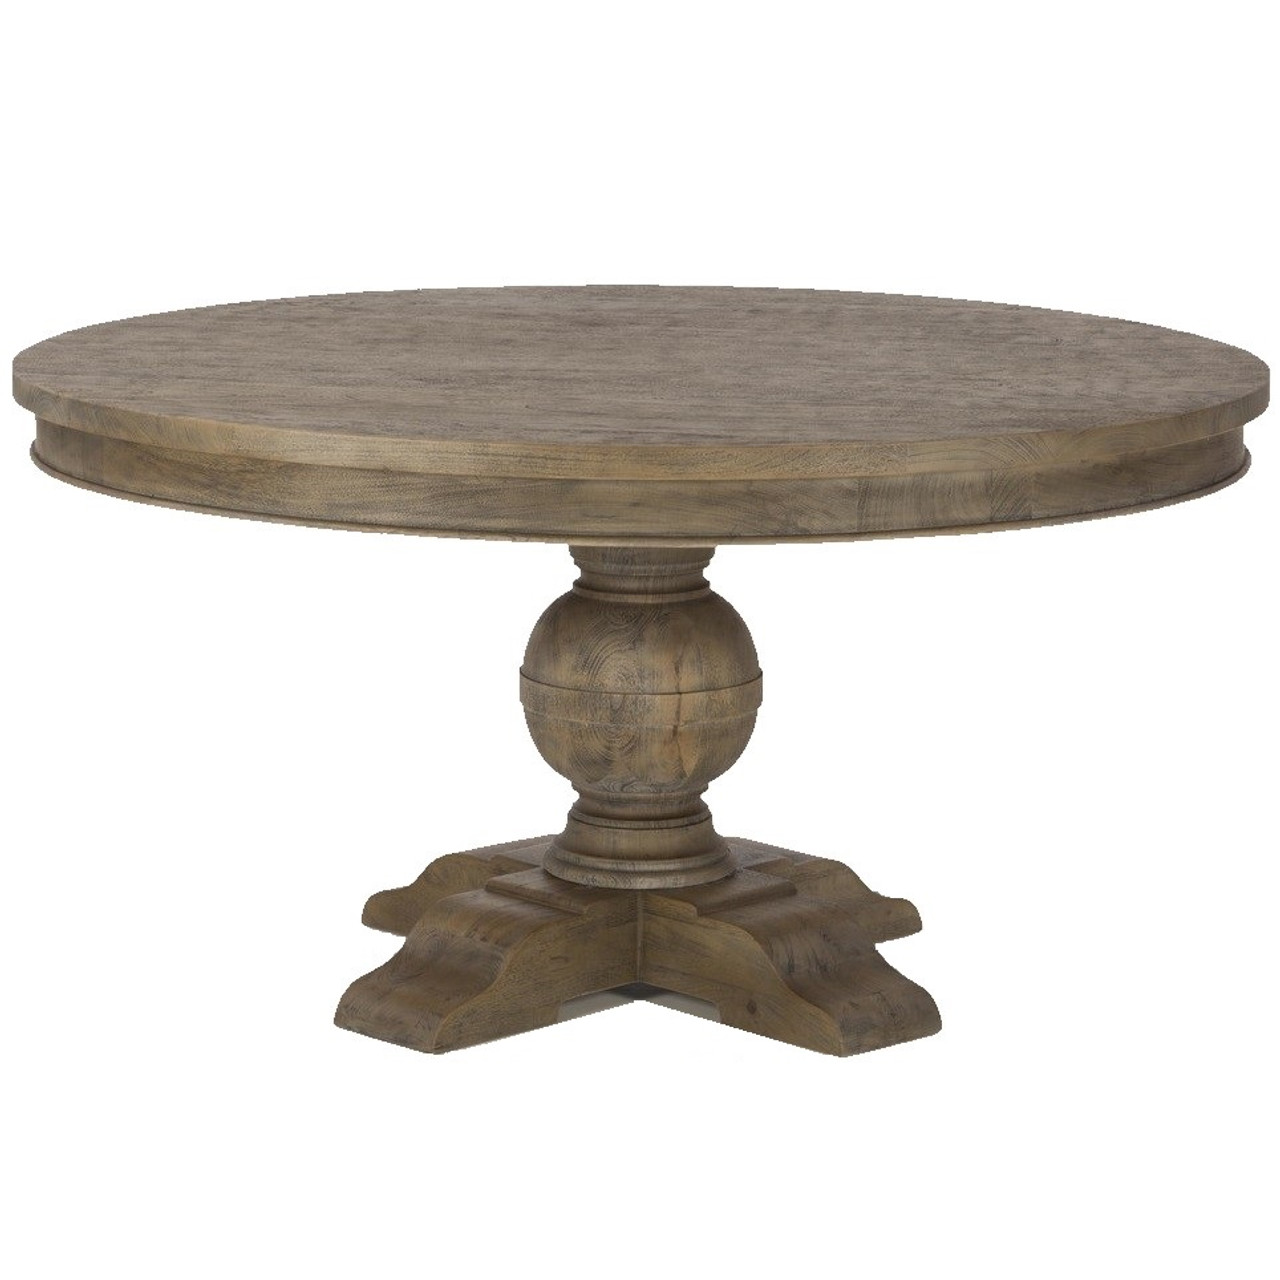 French Urn Solid Wood Pedestal Round Dining Table 54 Zin Home